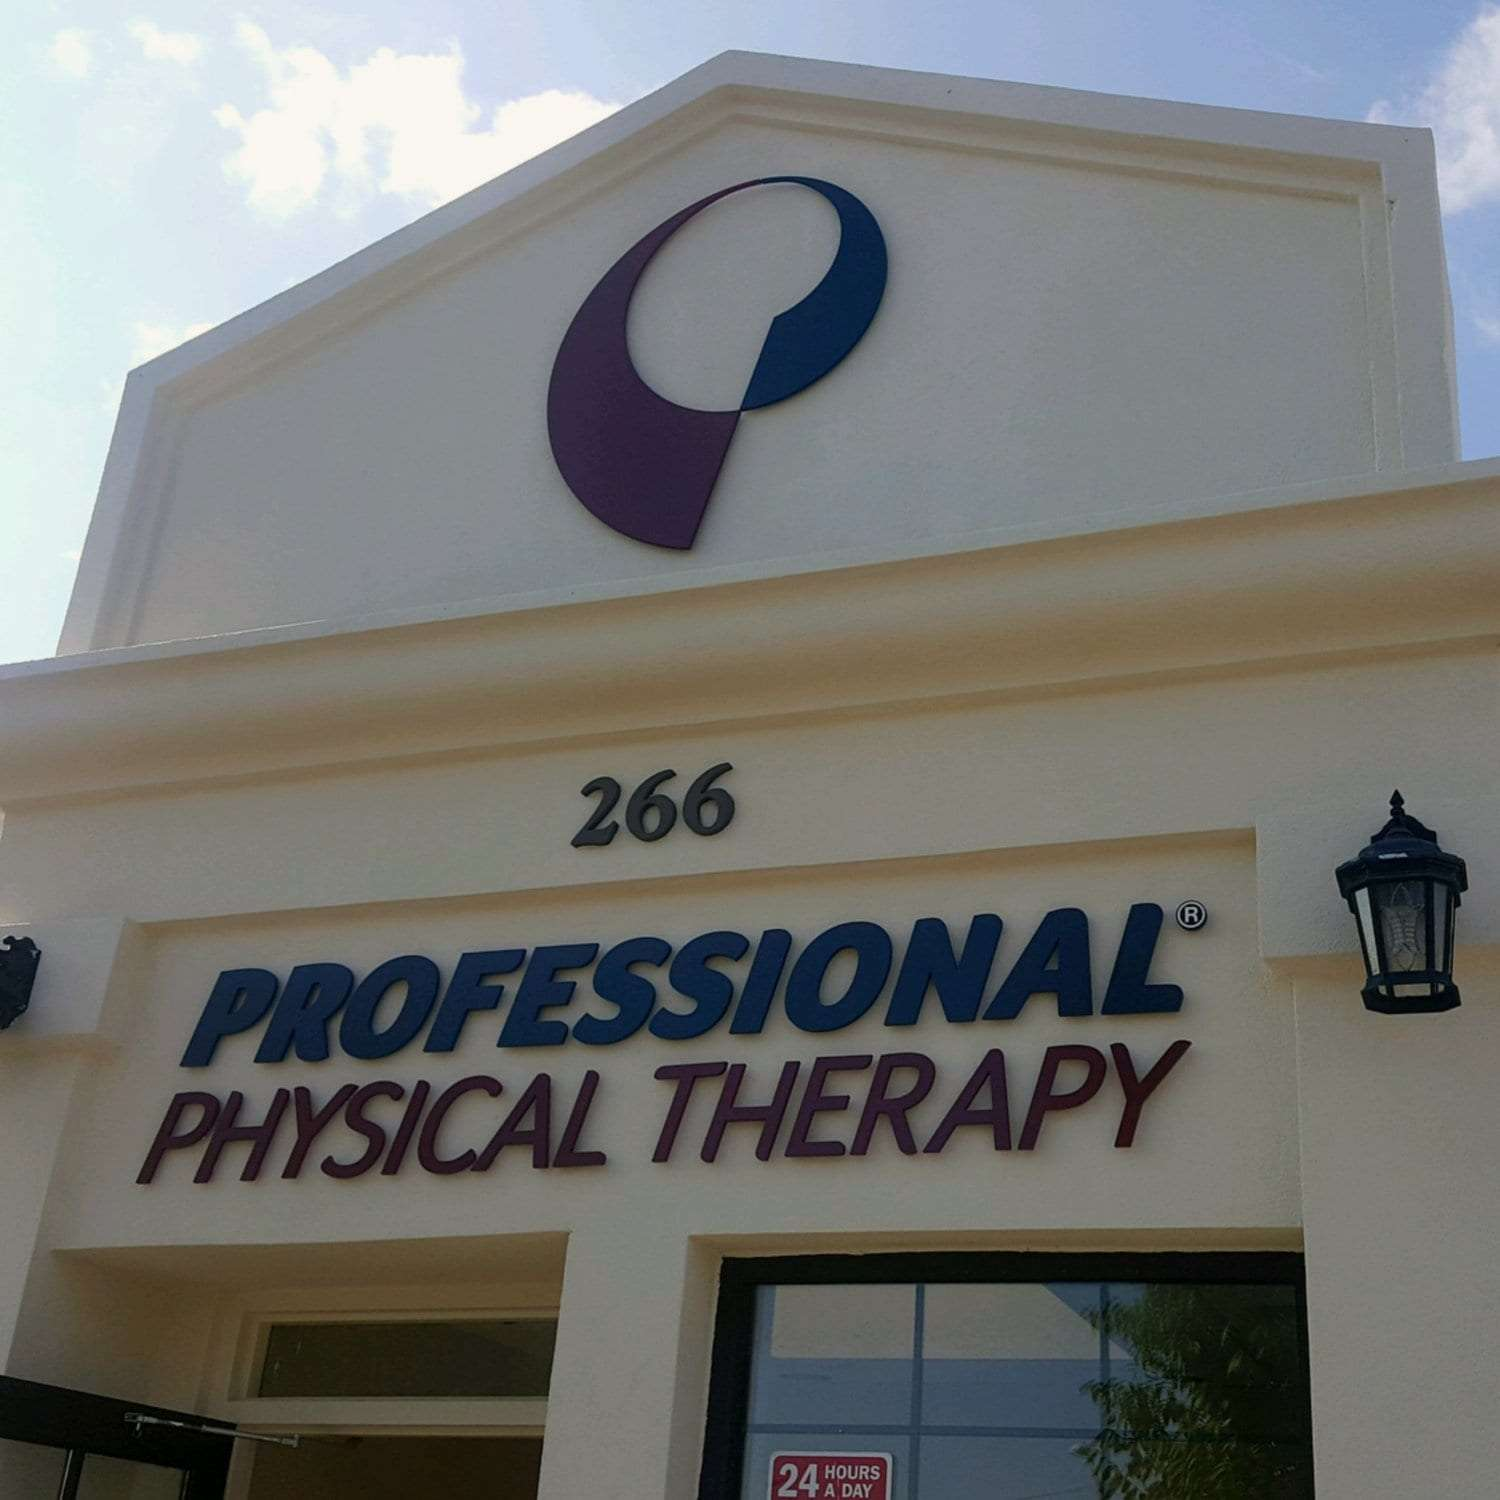 This is a photo of the entrance to our physical therapy clinic in Long Beach, New York.